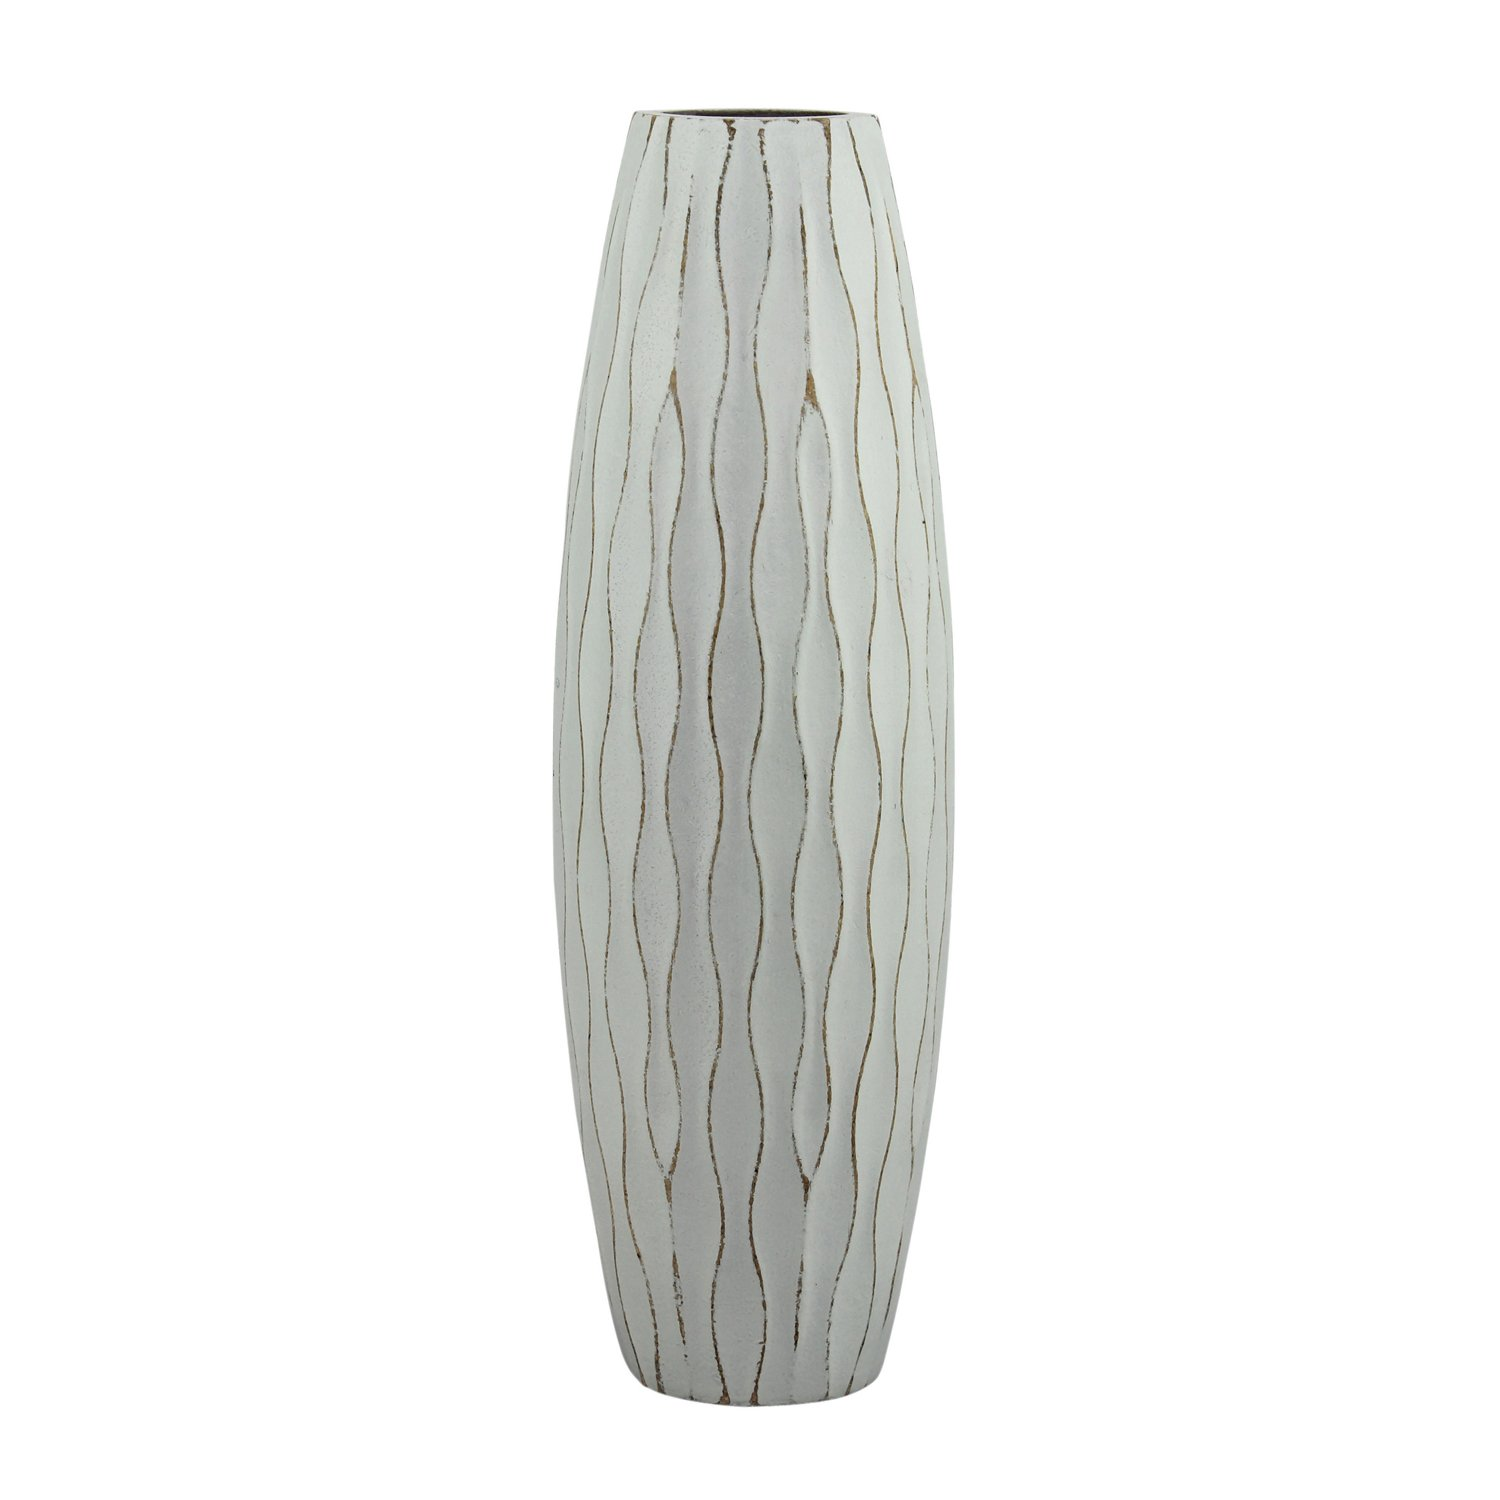 Stonebriar Beach Nostalgia Medium Weathered Pale Ocean Wood Vase